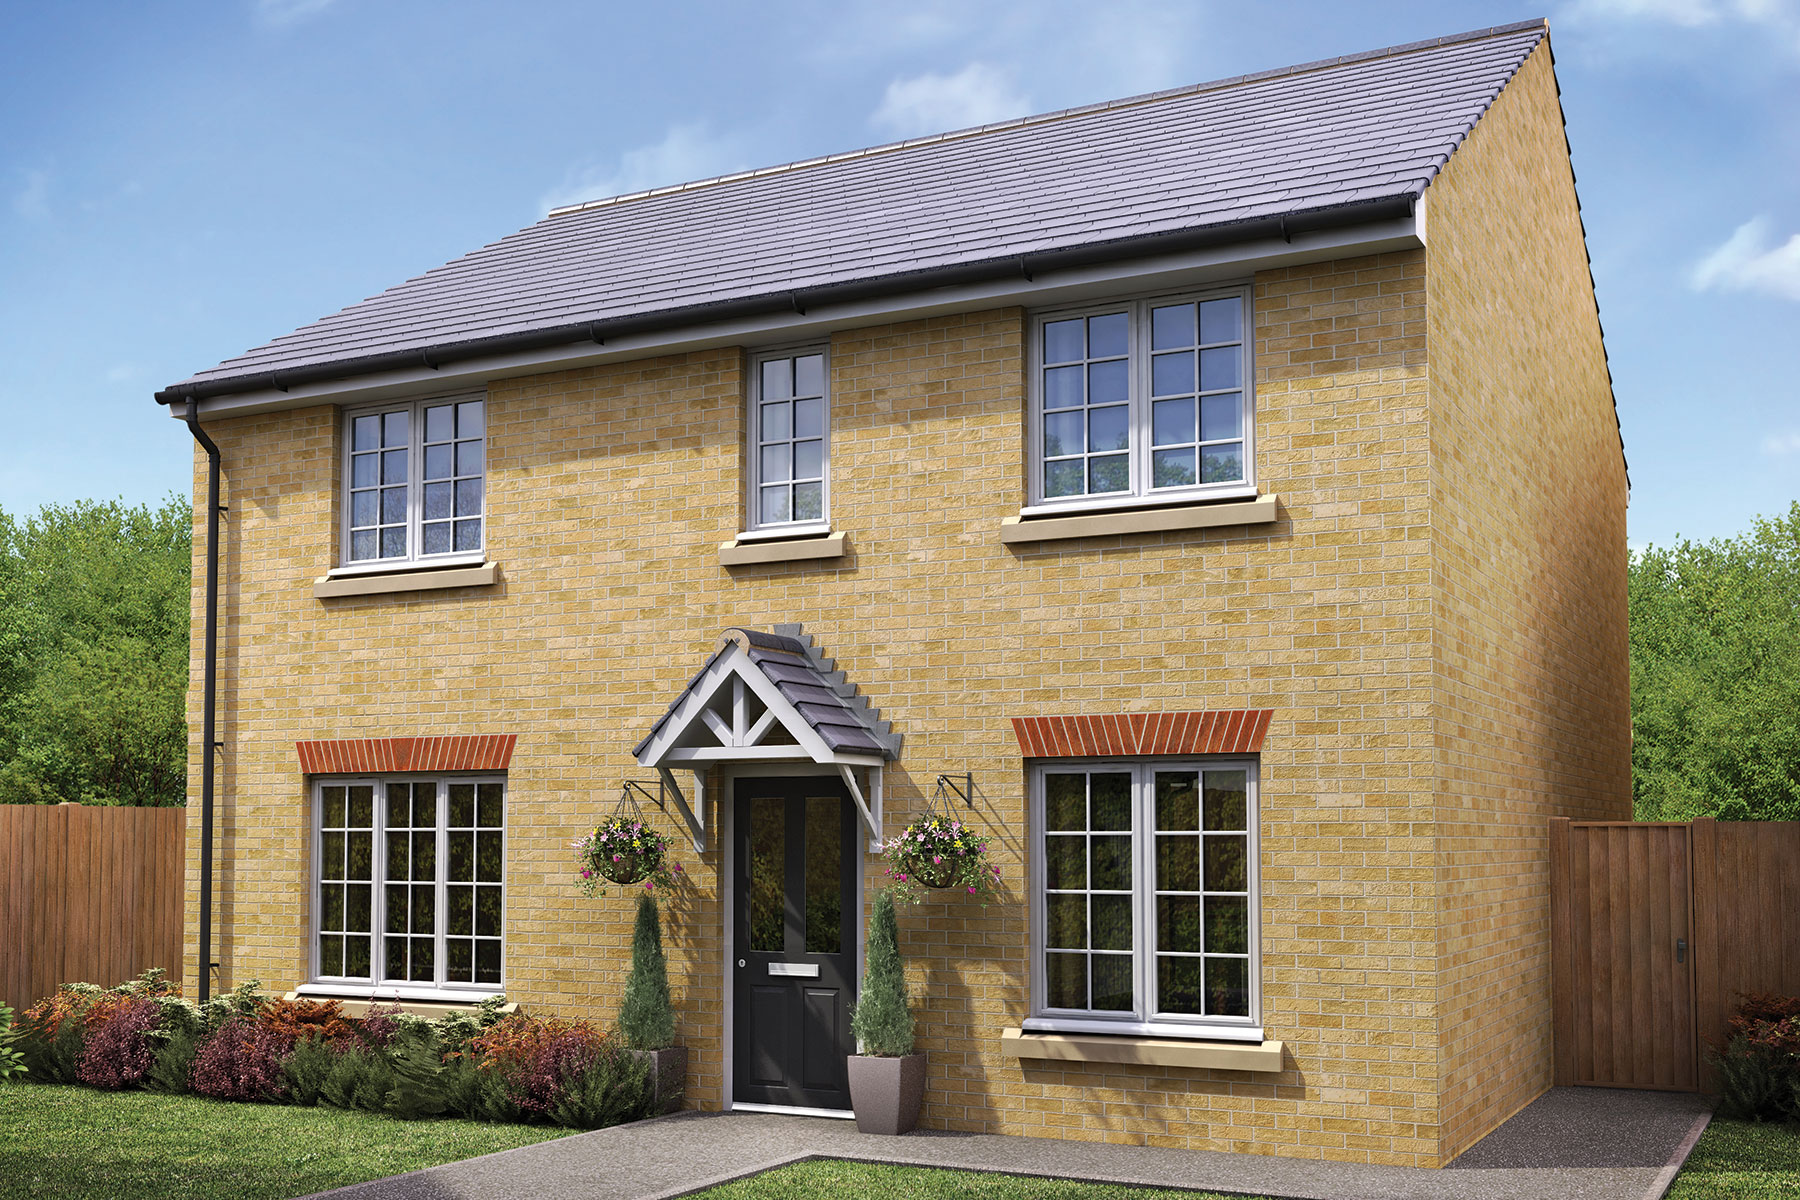 Taylor Wimpey - Exterior - The Shelford - 4 bedroom new home